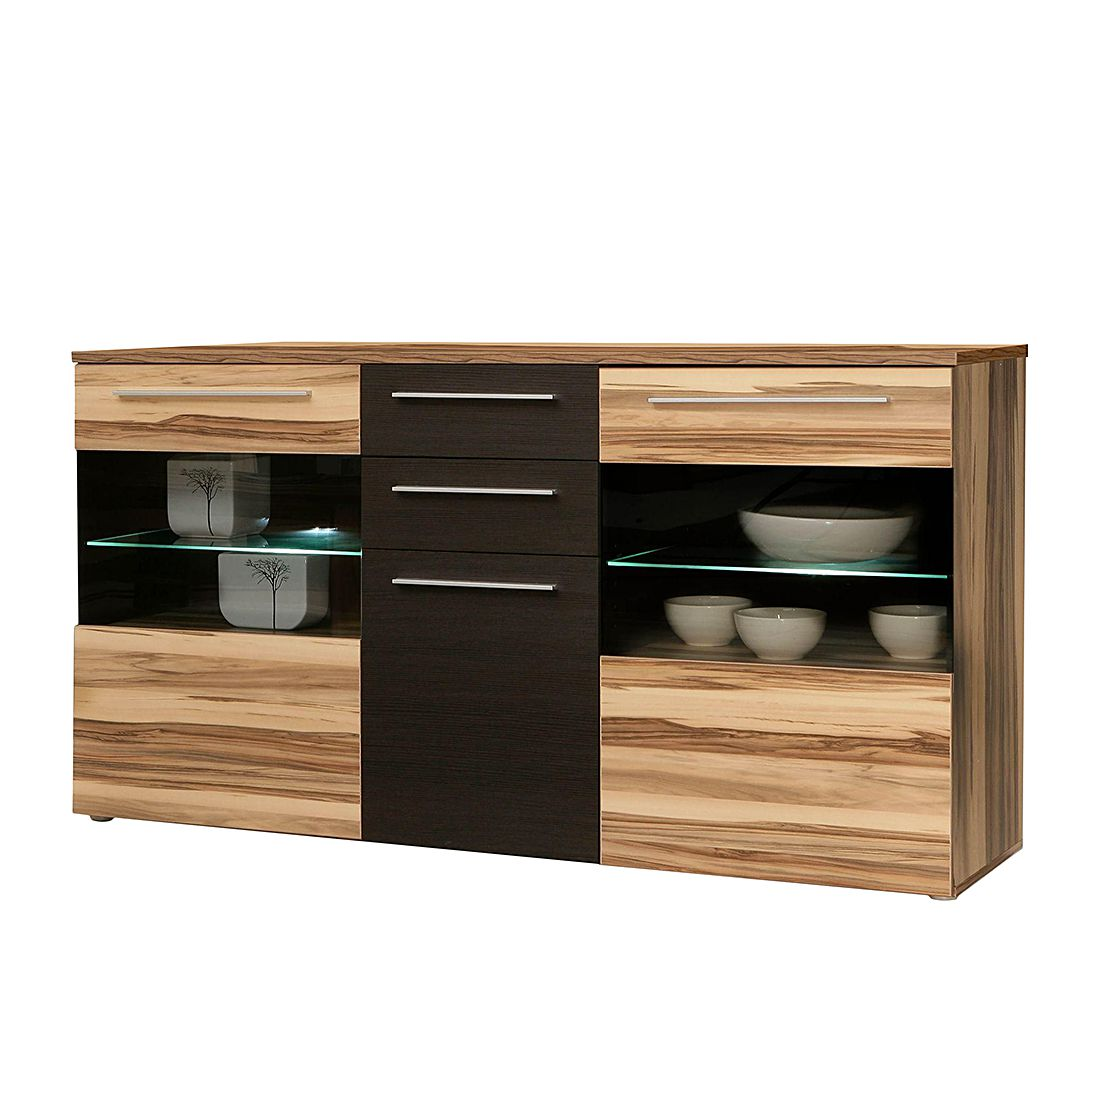 sideboard effekt mit glasauschnitt baltimore walnuss mit absetzung in eiche schoko schrank. Black Bedroom Furniture Sets. Home Design Ideas